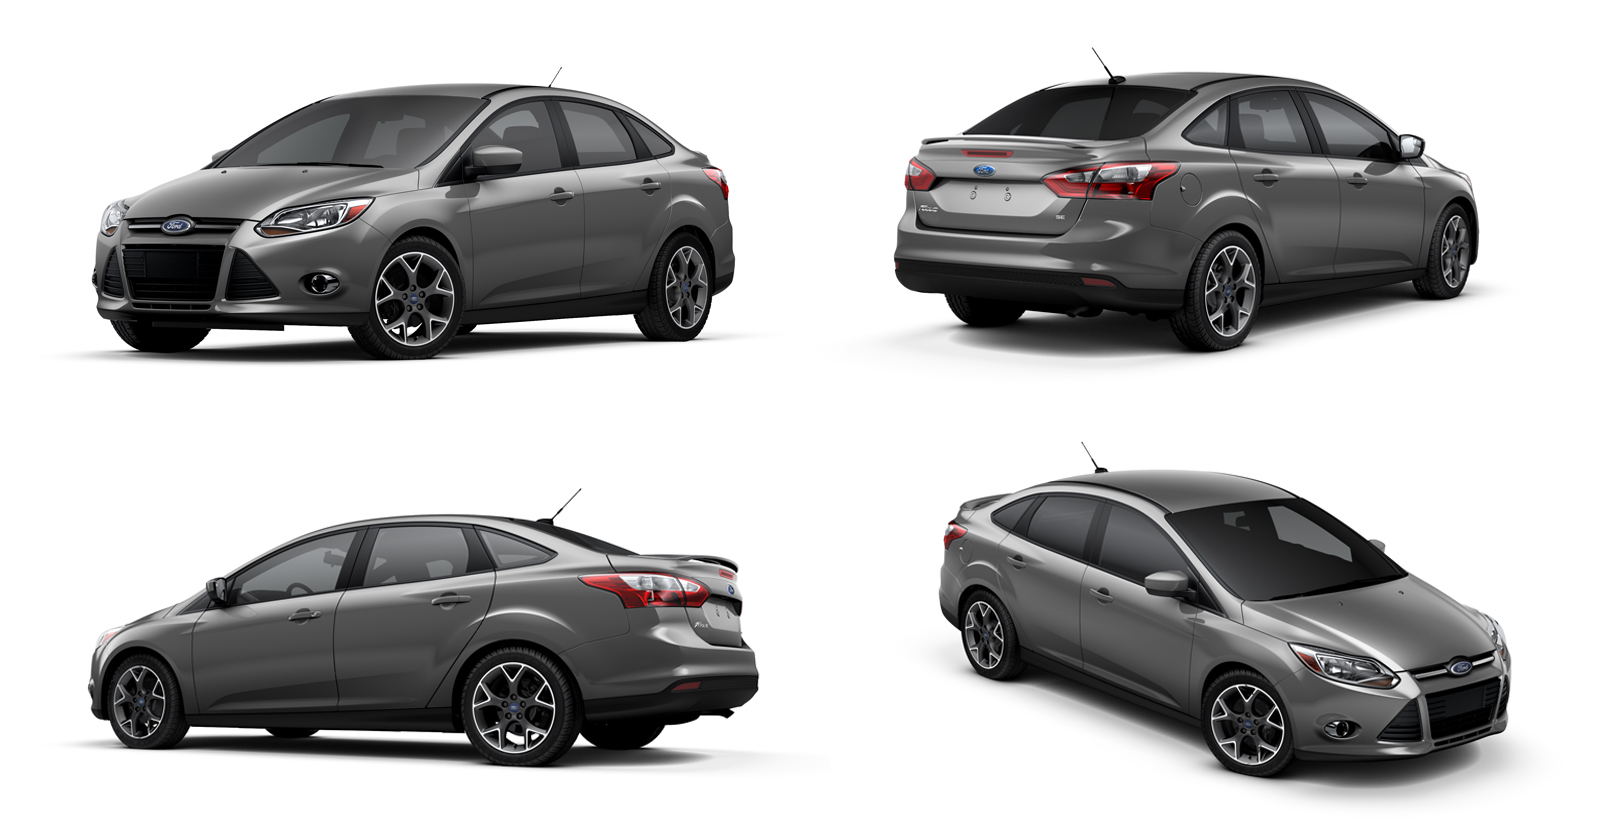 2012 Focus Configurator. 3ds Max/ Vray/ After Effects